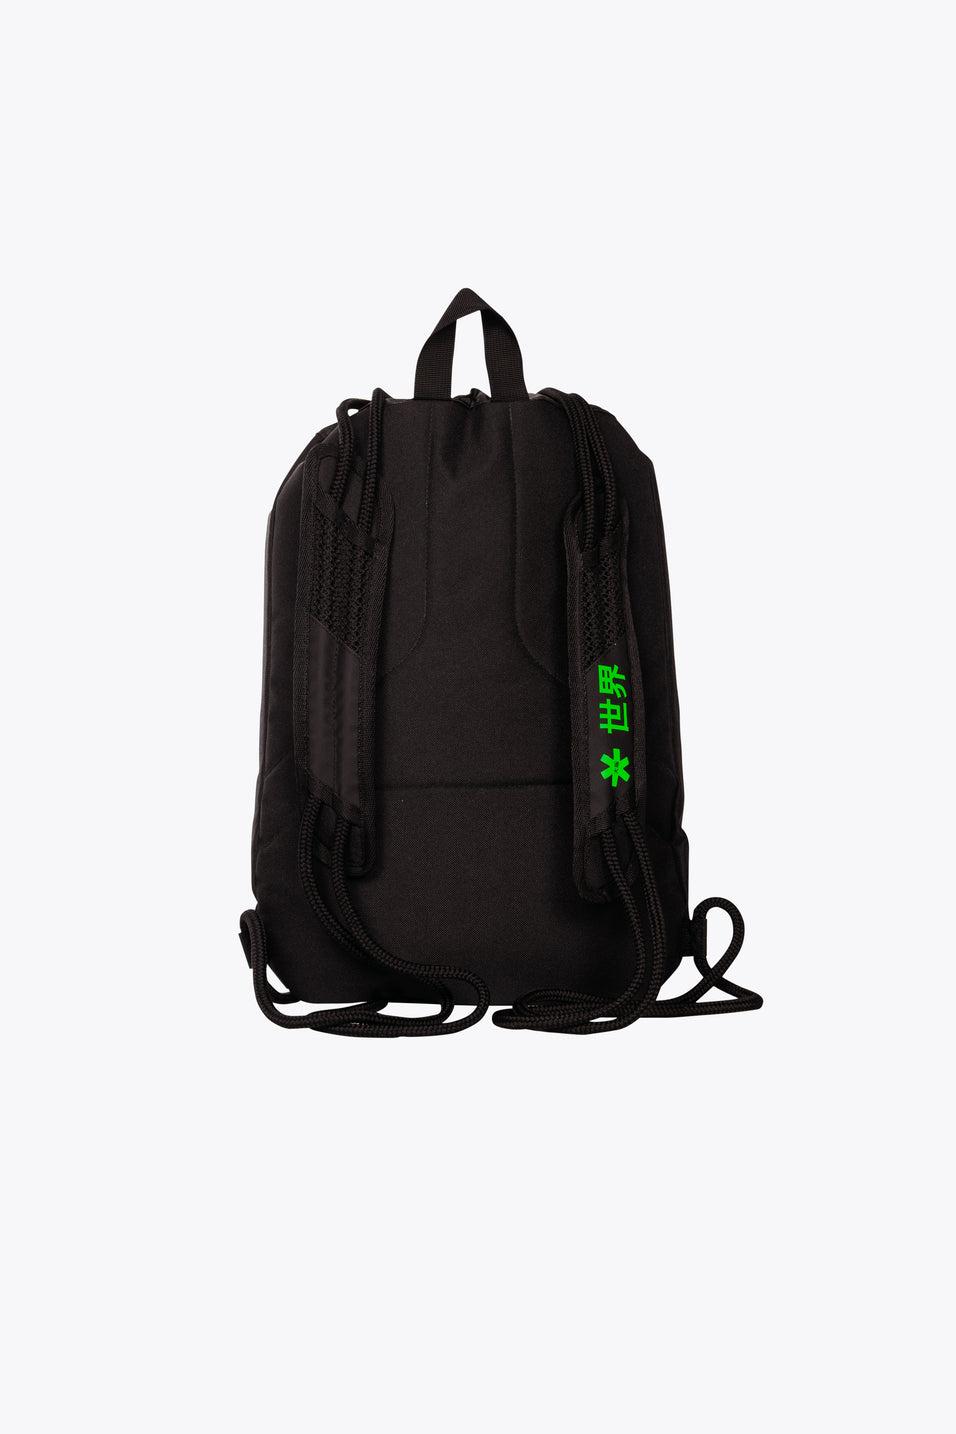 Sports Gym Sack - Iconic Black